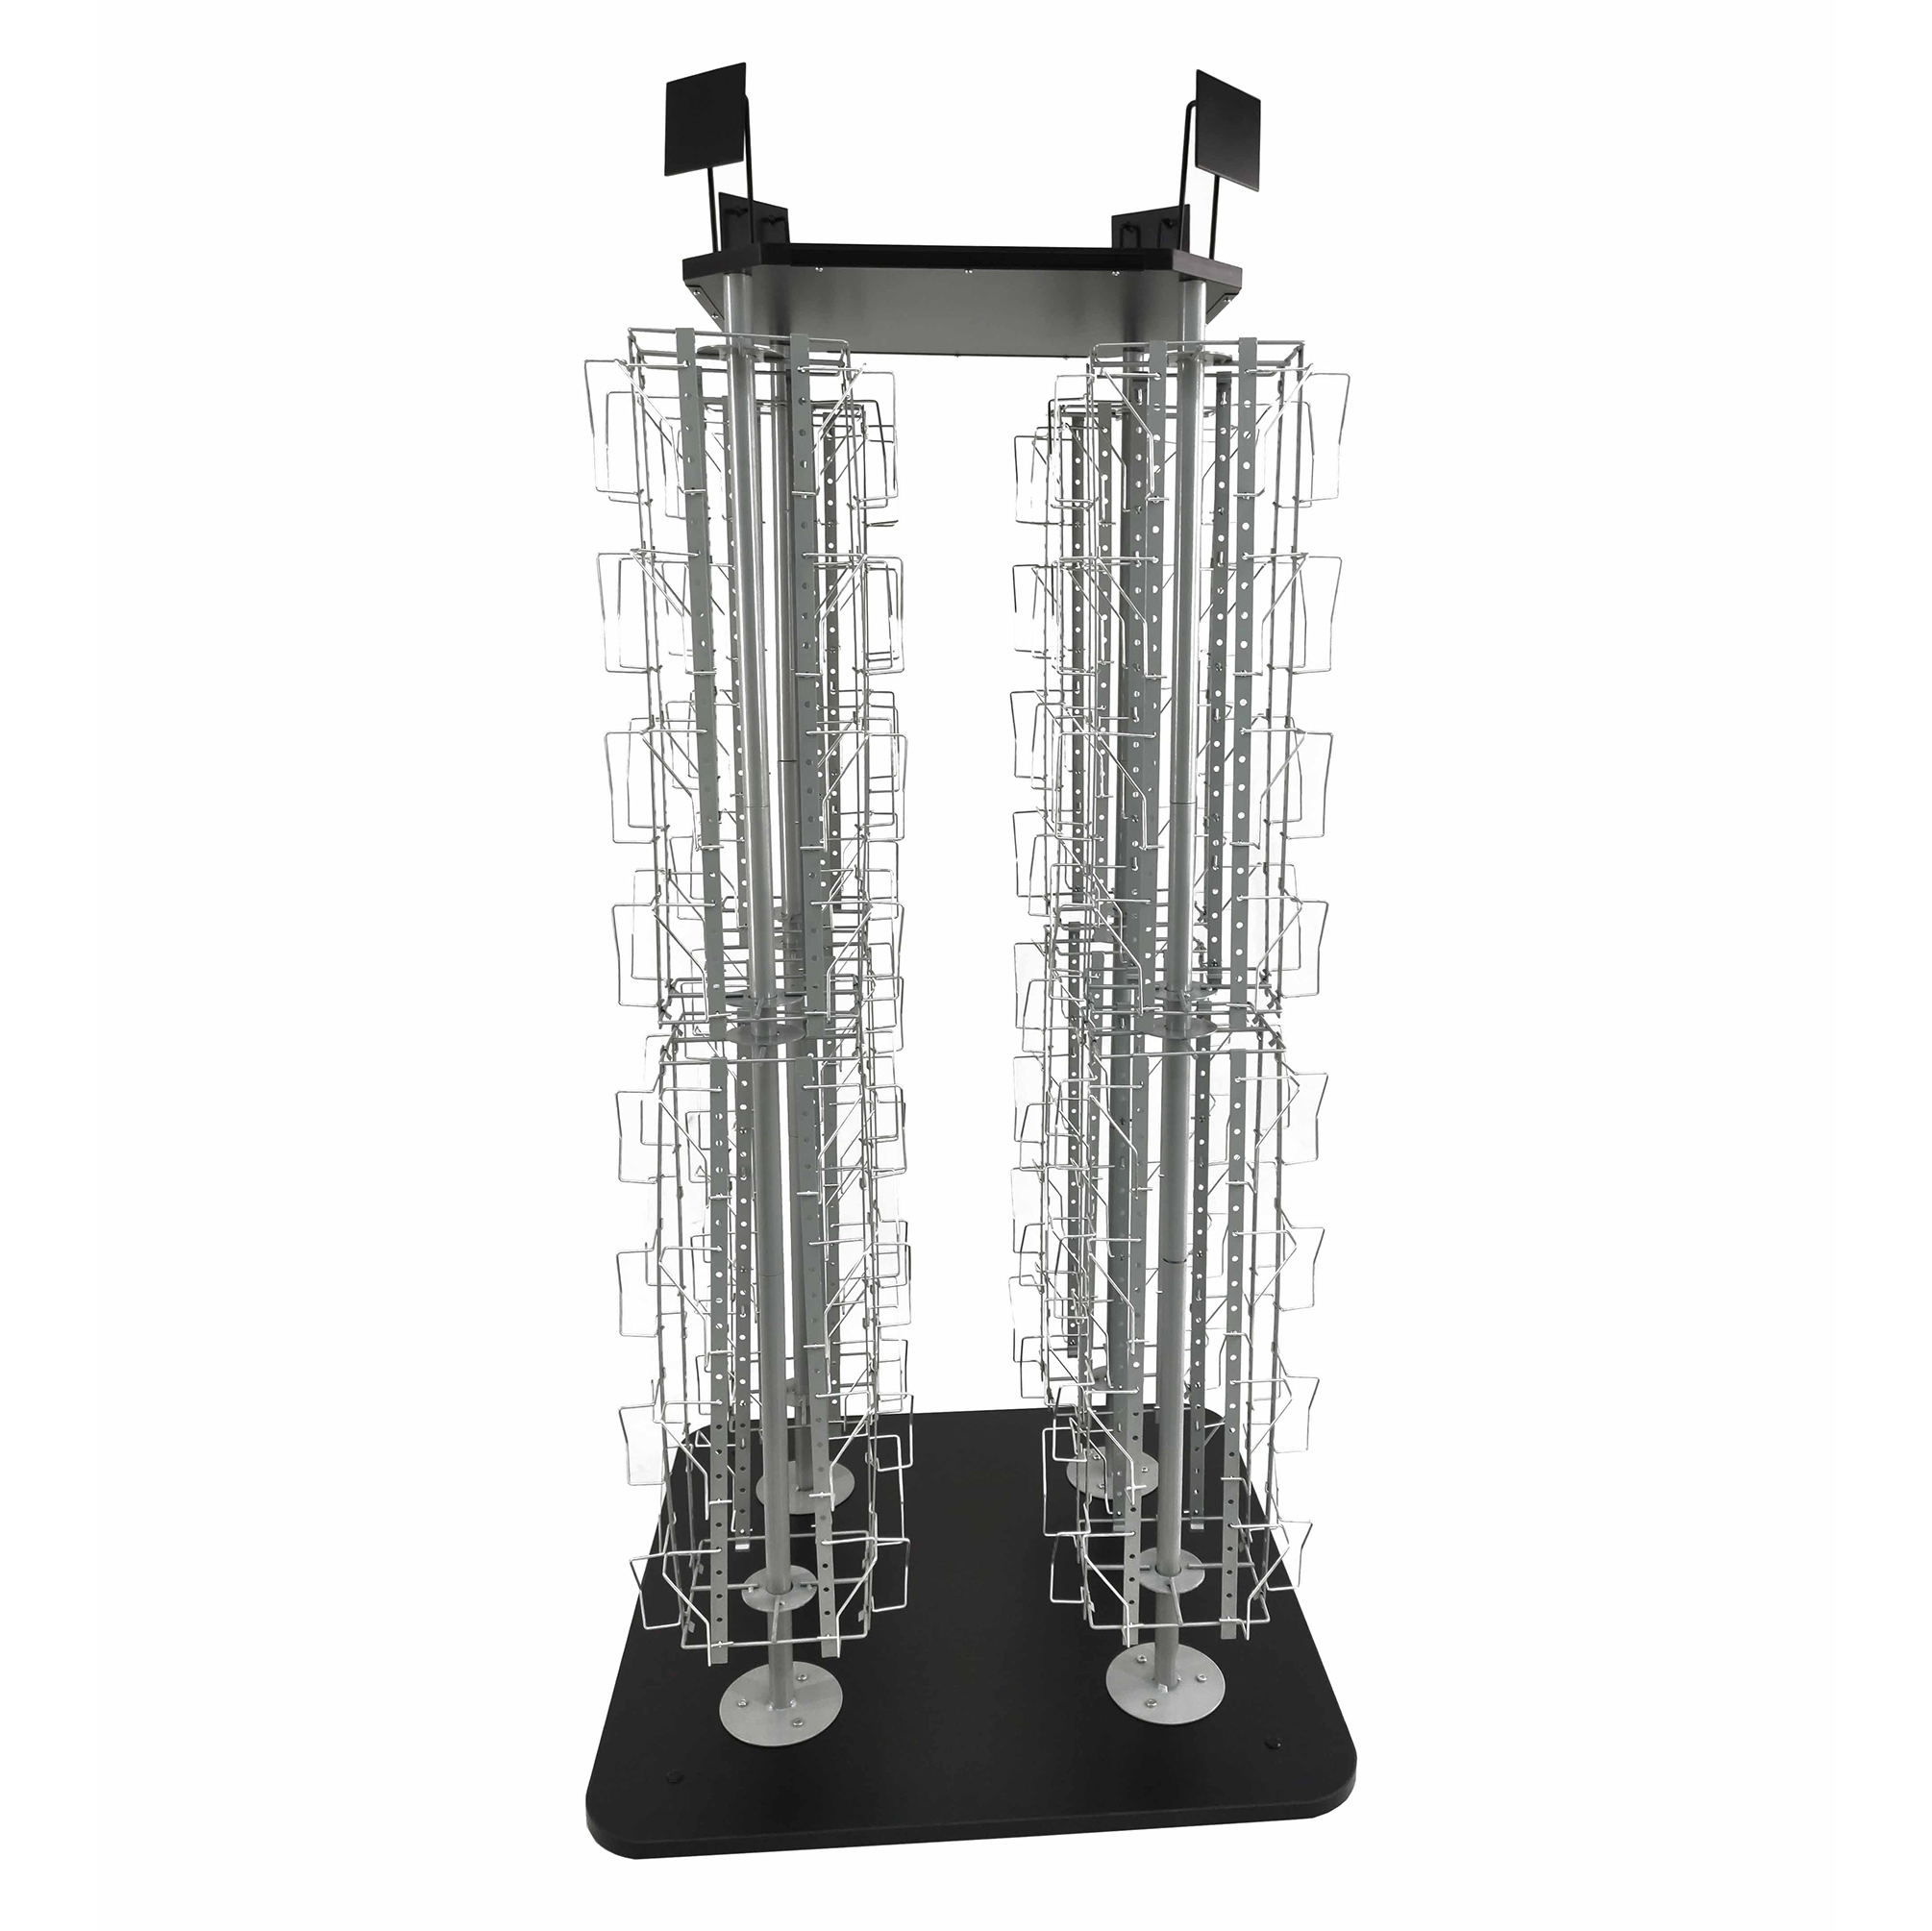 Cd dvd literaturegreeting card postcard rack display 192 pockets image is loading cd dvd literature greeting card postcard rack display m4hsunfo